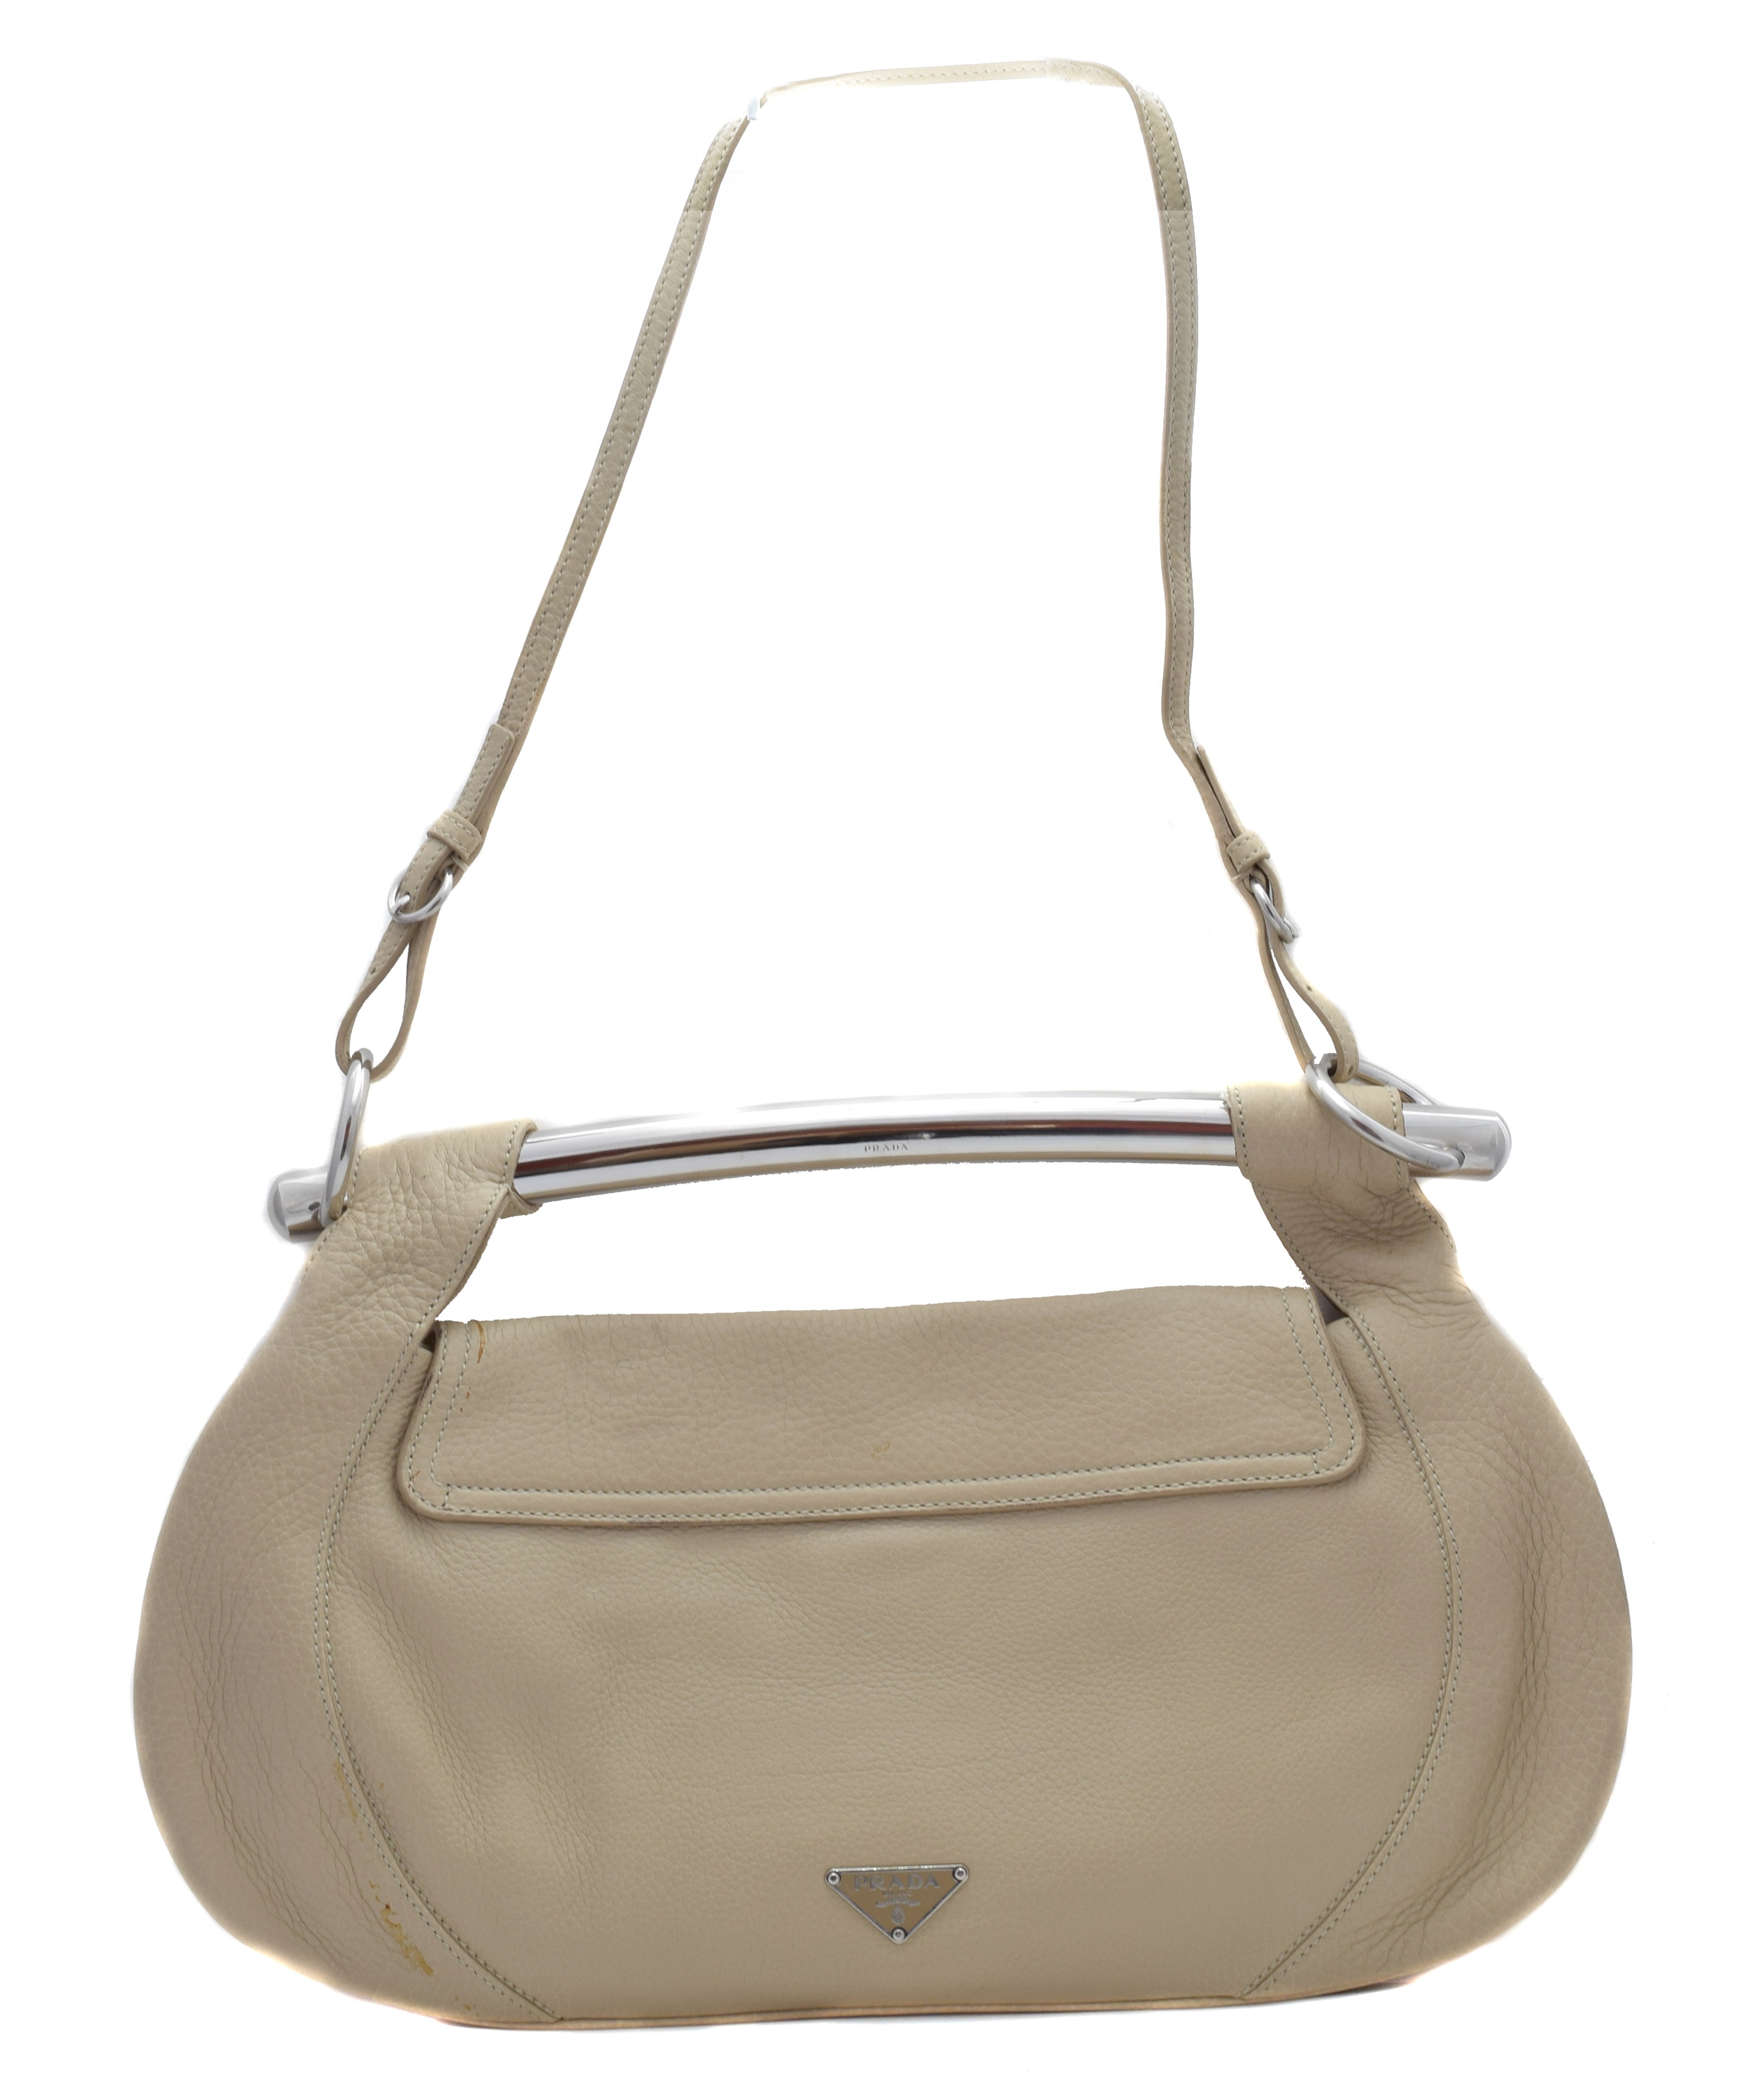 A Prada Bar Handle leather shoulder bag, the taupe grained leather exterior with maker's logo to front, silver-tone curved bar handle, detachable shoulder strap, top flap fastening and maker's monogram canvas interior, dimensions 39.5 x 24.5 x 8.5cm, with maker's authenticity card and dust bag.